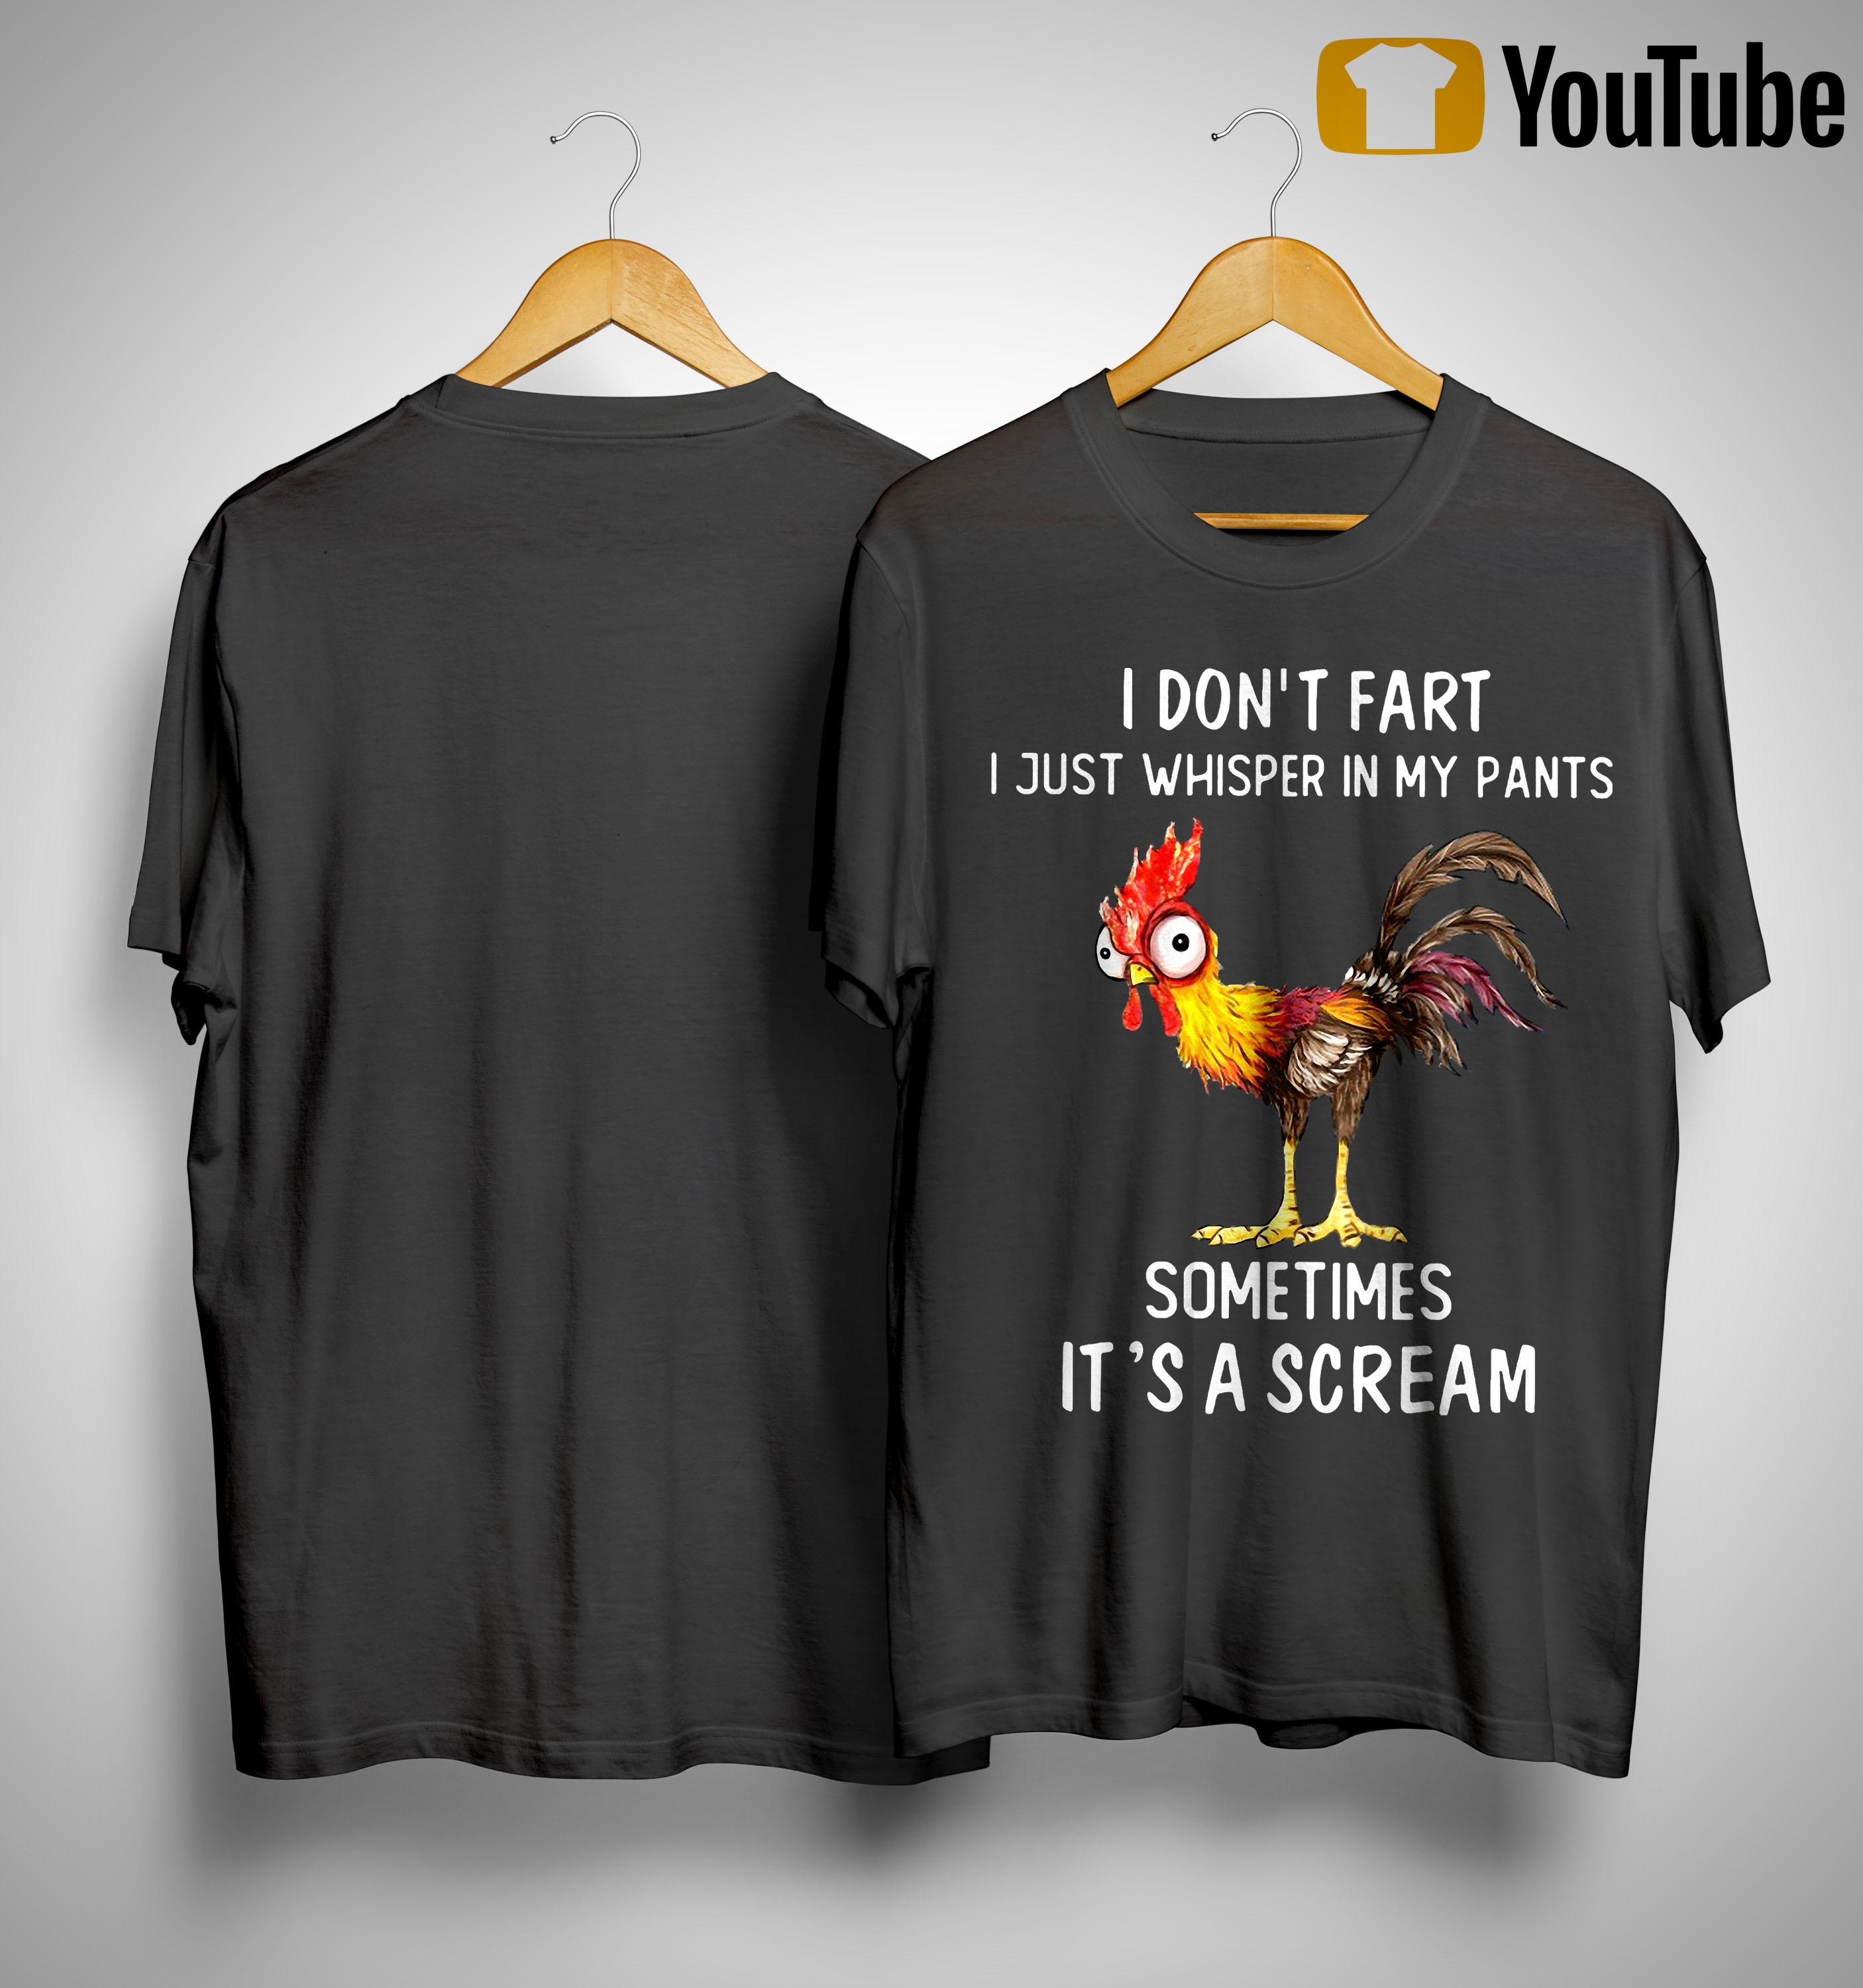 Chicken I Don't Fart I Just Whisper In My Pants Sometimes It's A Scream Shirt